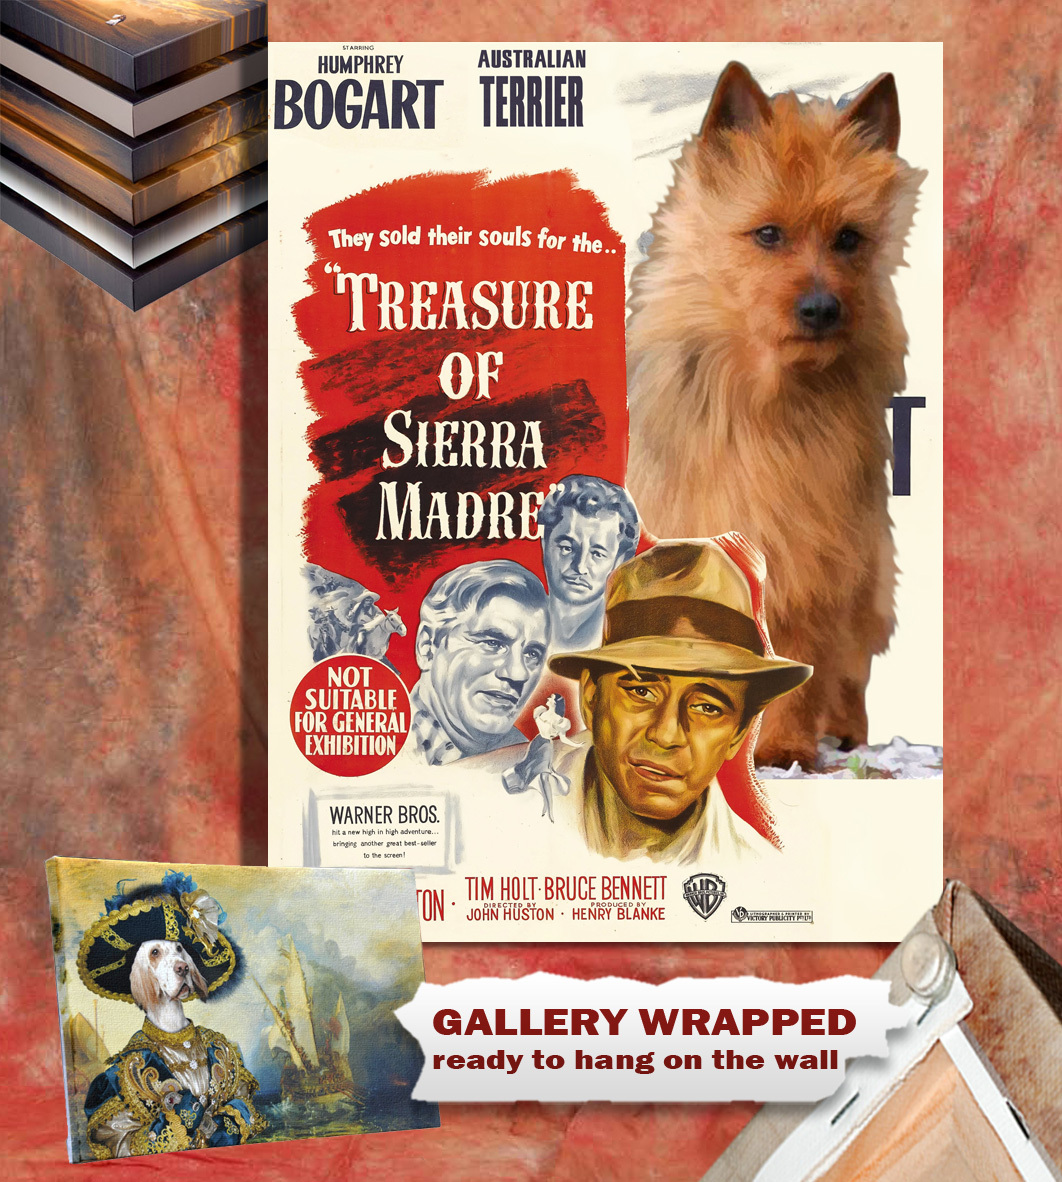 Australian-terrier-the-treasure-of-the-sierra-madre-new-frame